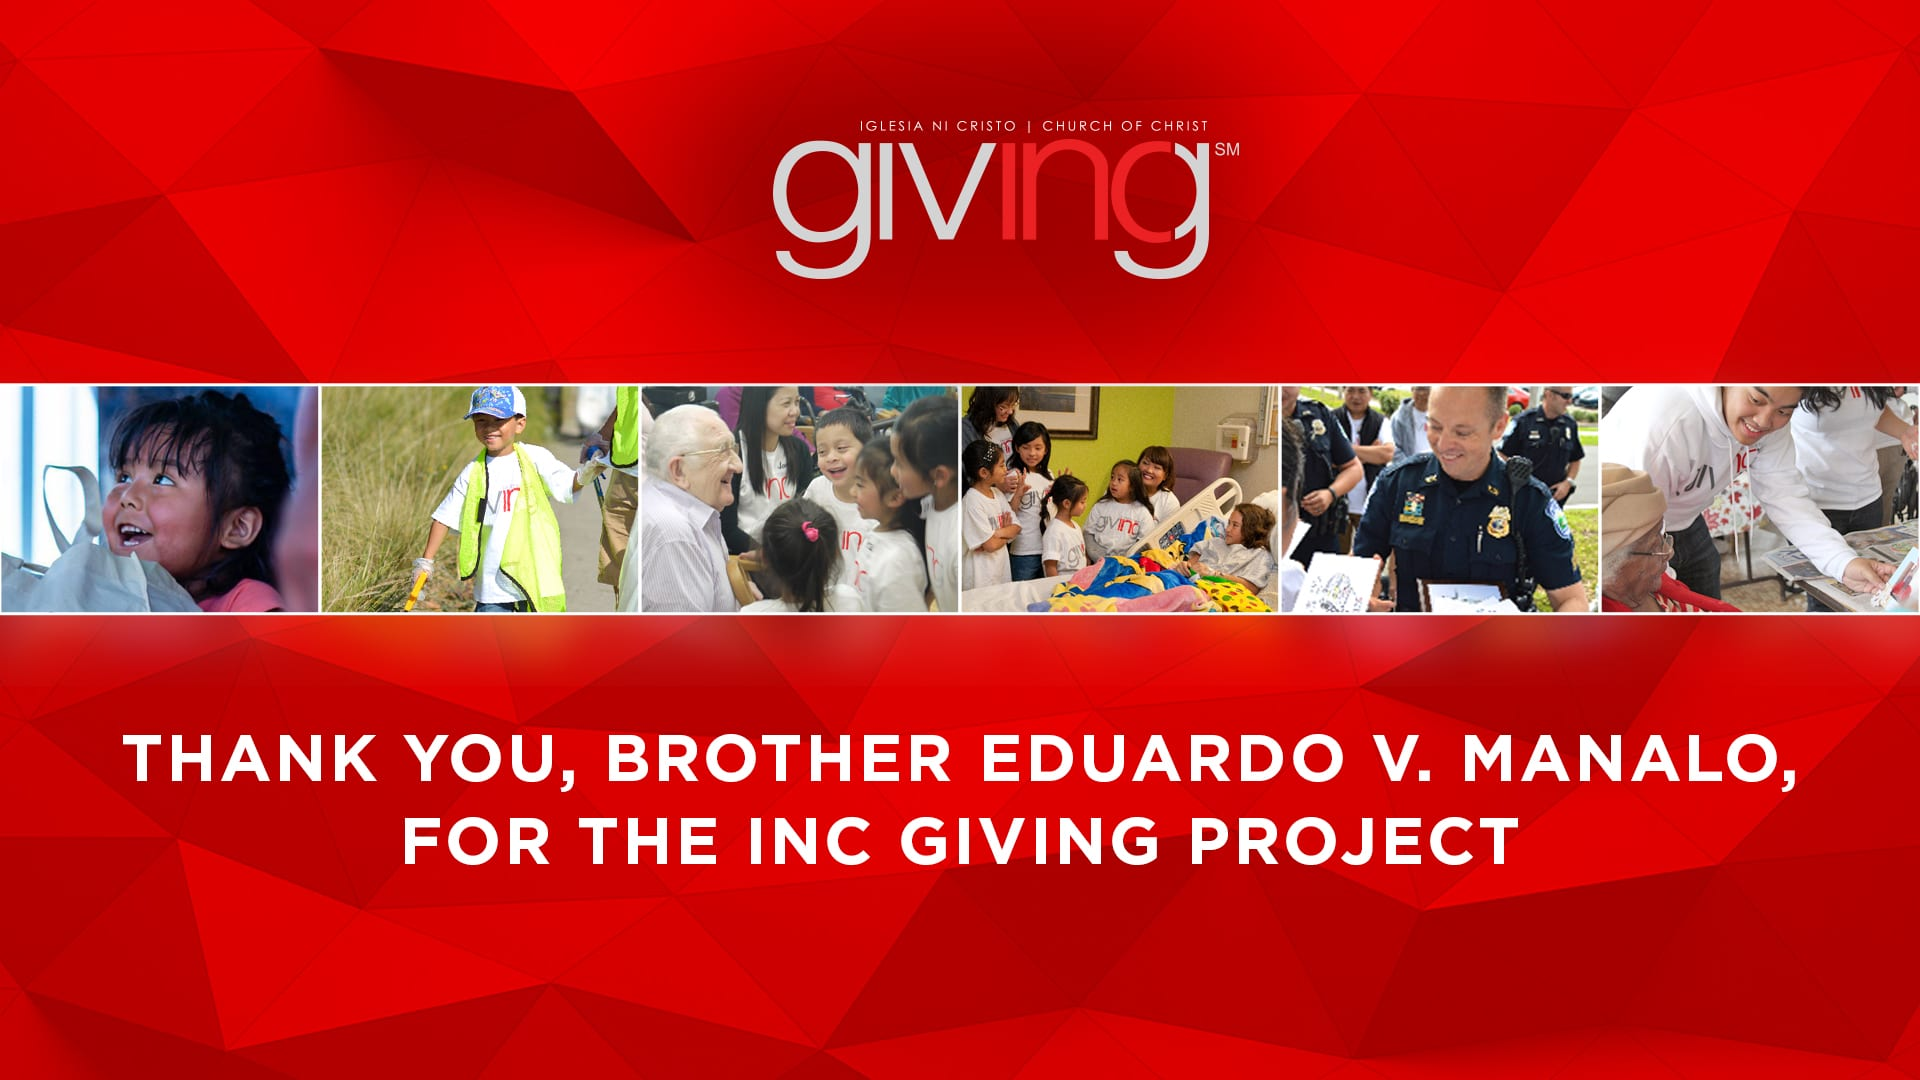 Thank You, Brother Eduardo V. Manalo, for the INC Giving Project